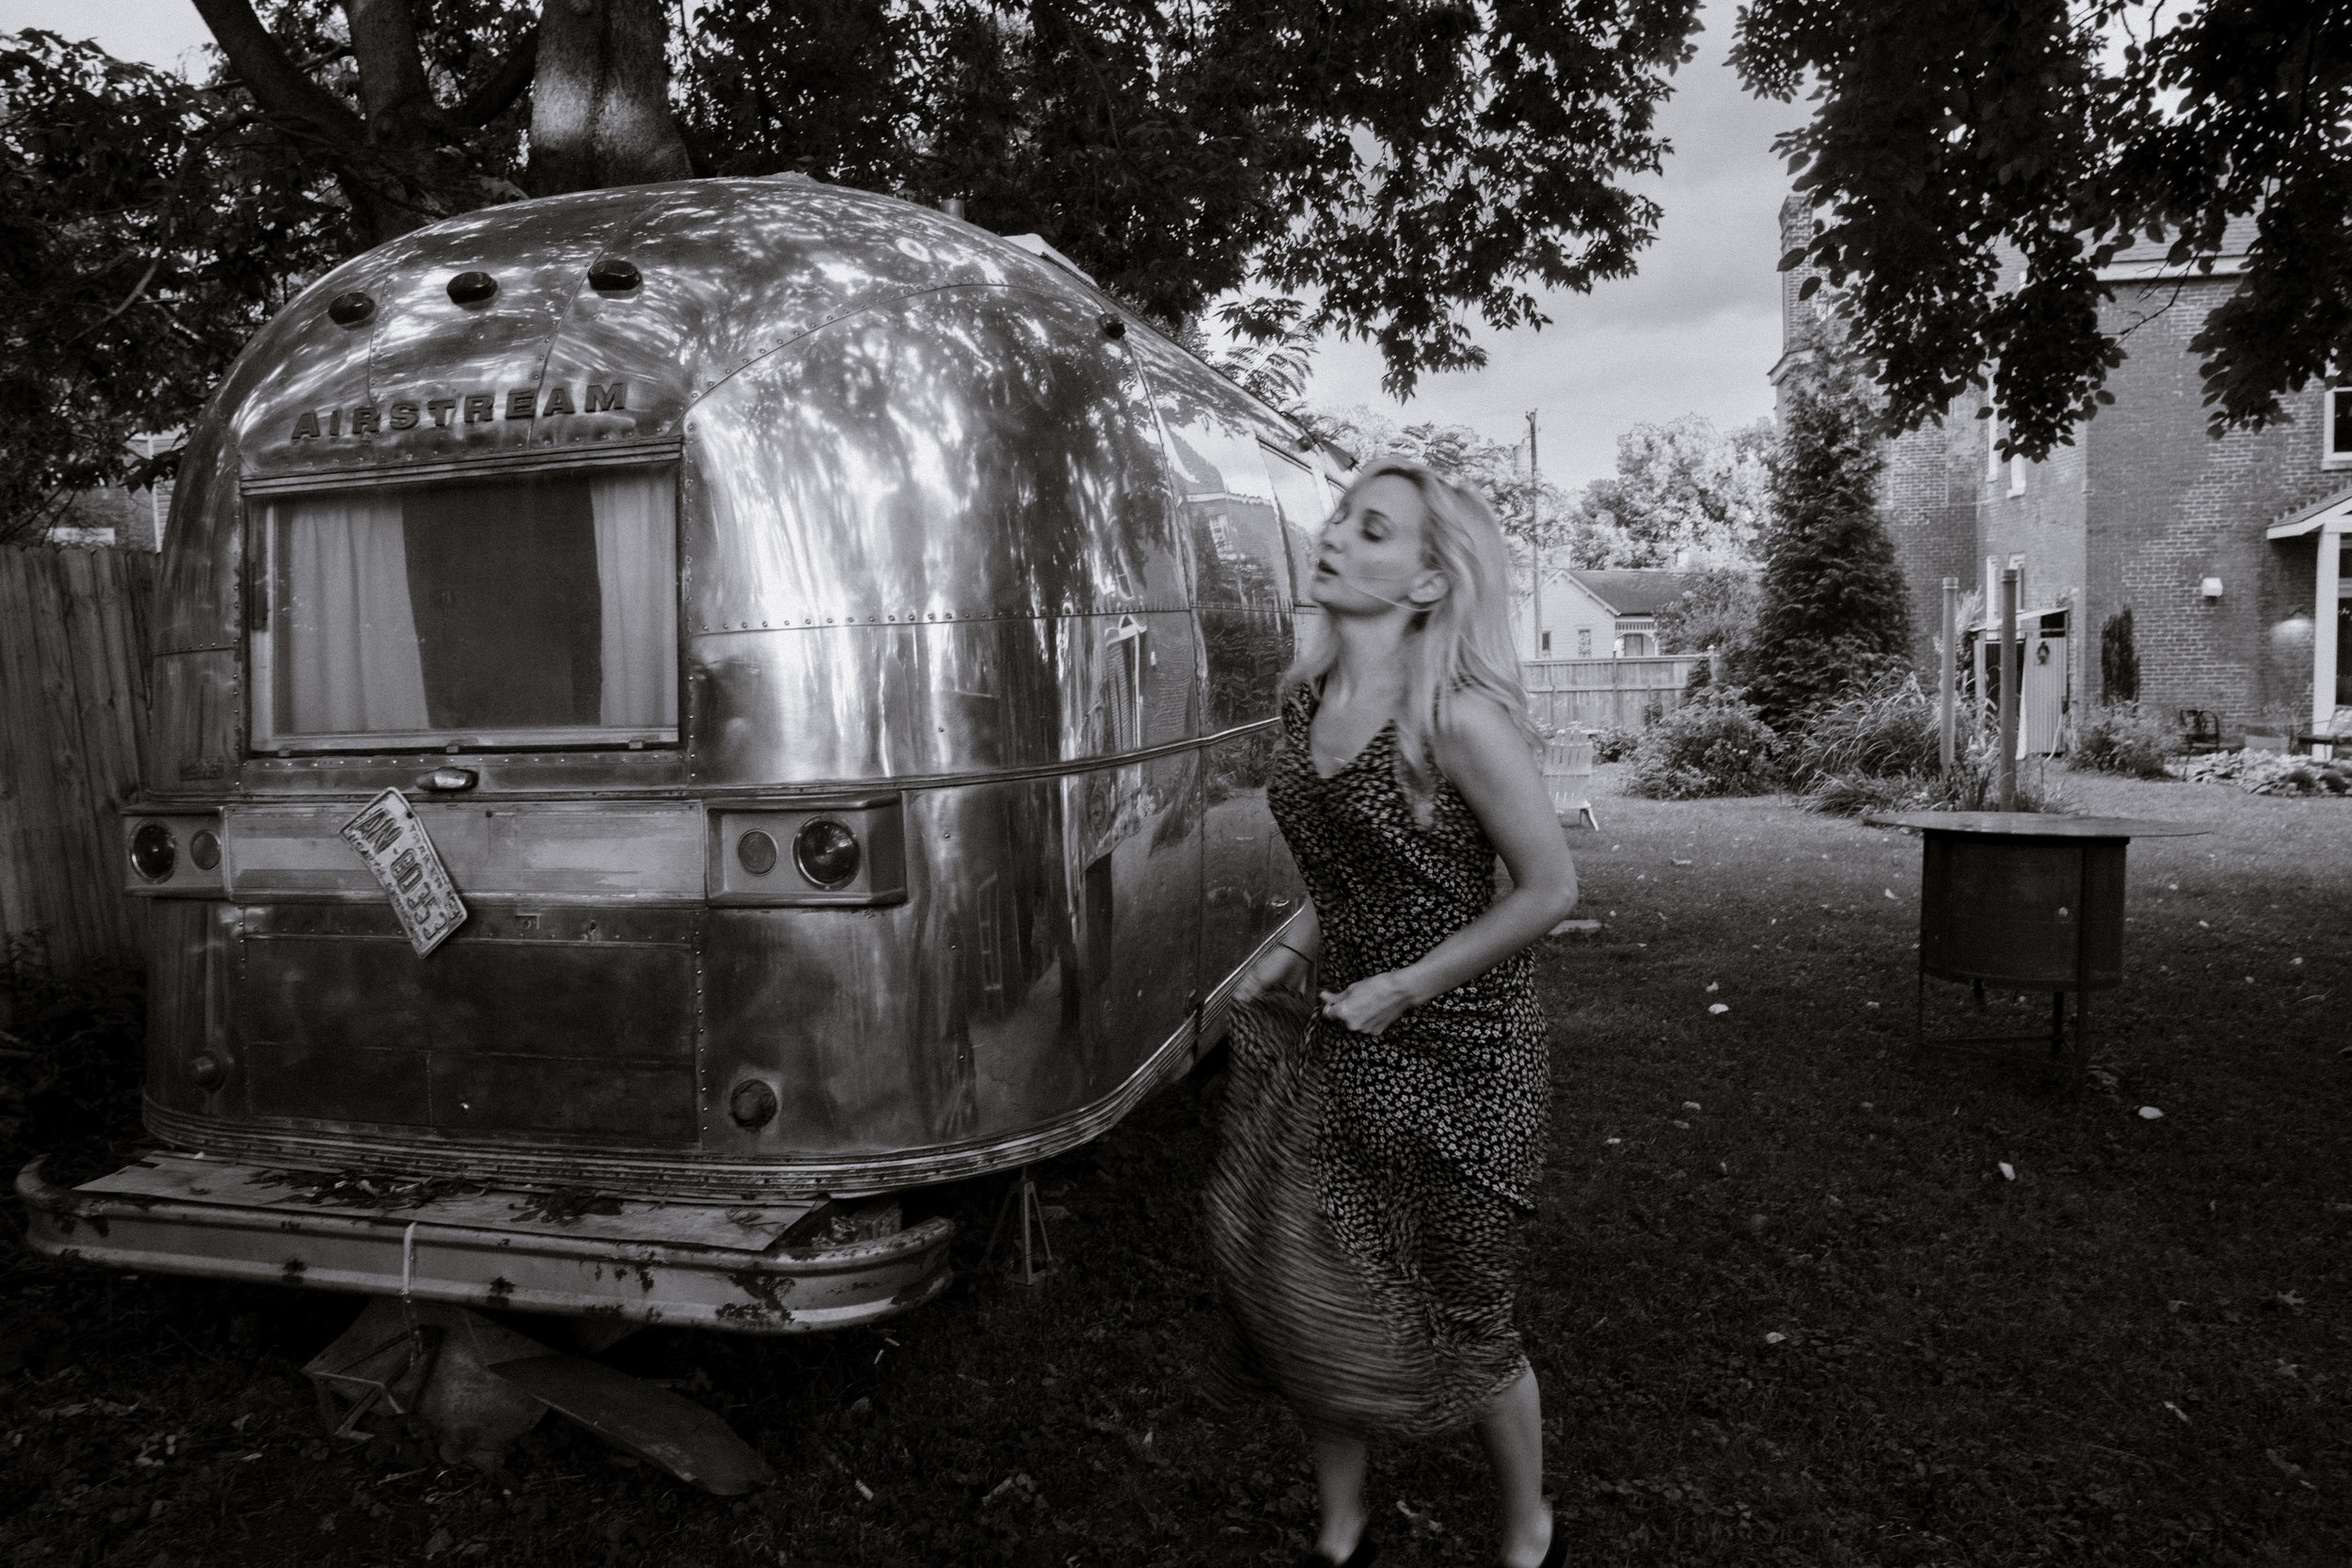 Jessy-Easton-Lexington-Airstream-06688.jpg